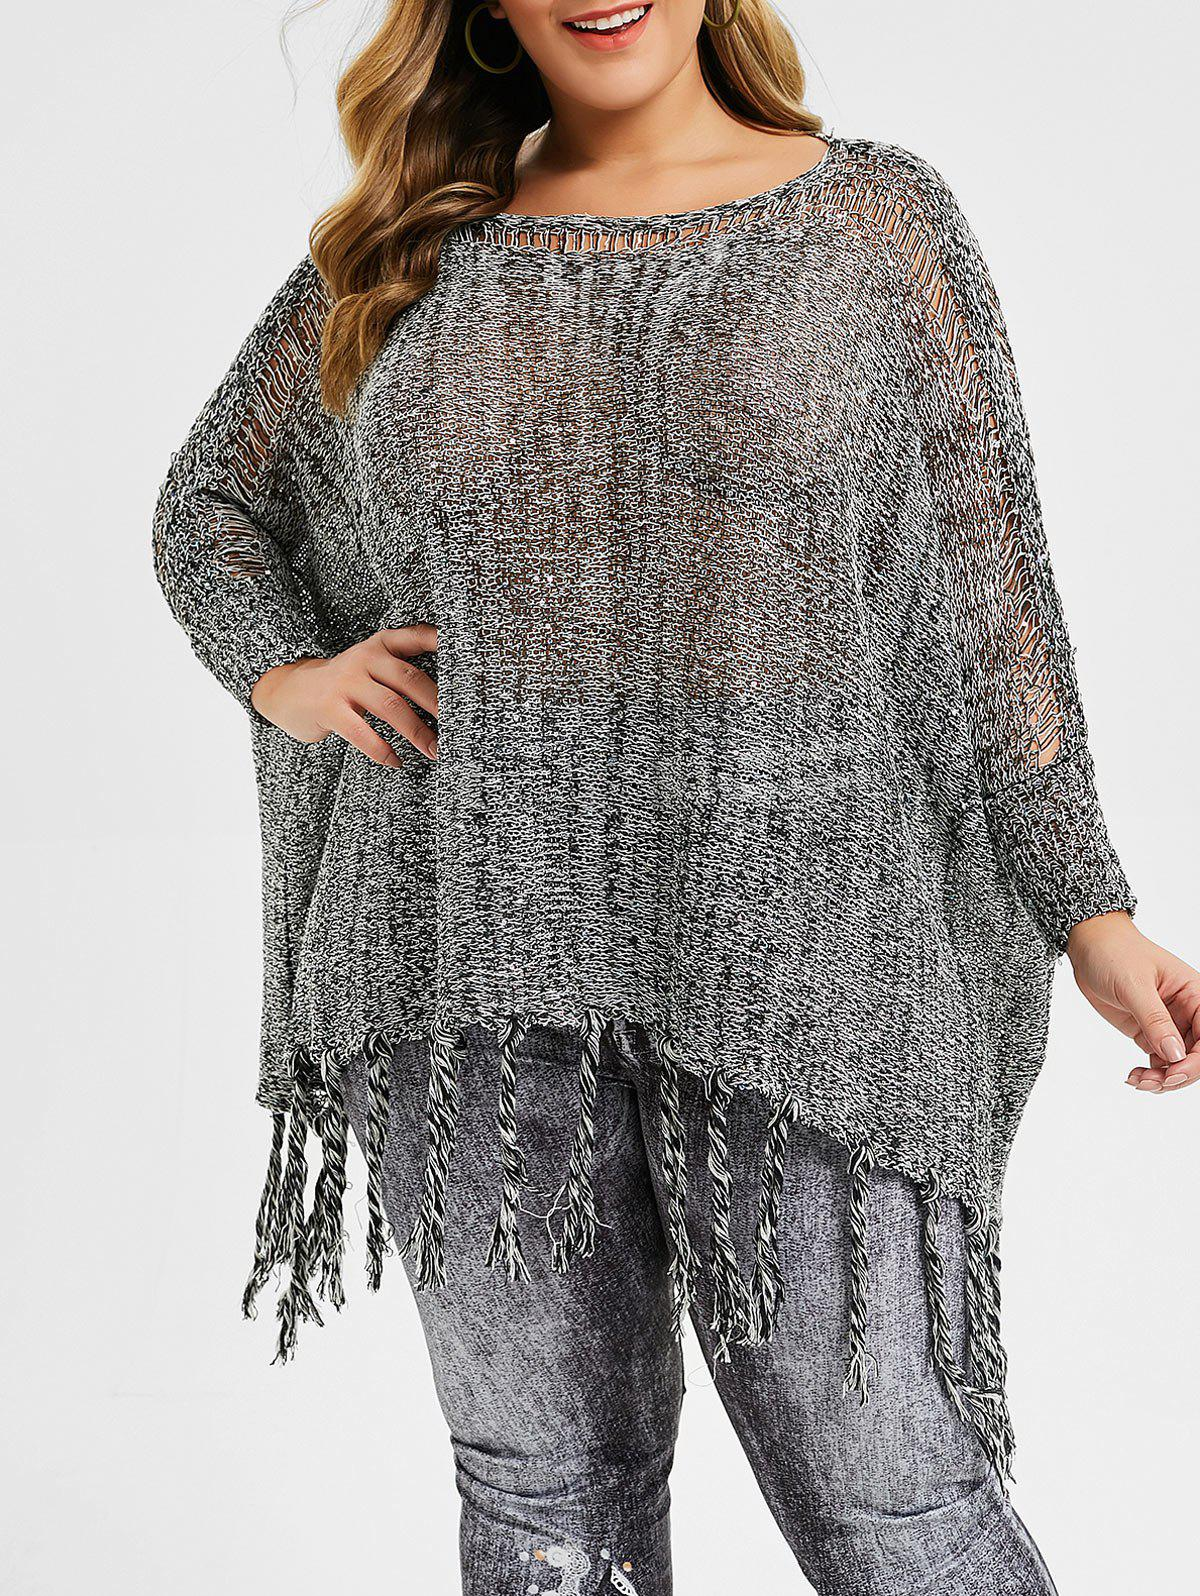 Sequined Fringed Ripped Plus Size Batwing Sleeve Sweater - GRAY CLOUD ONE SIZE